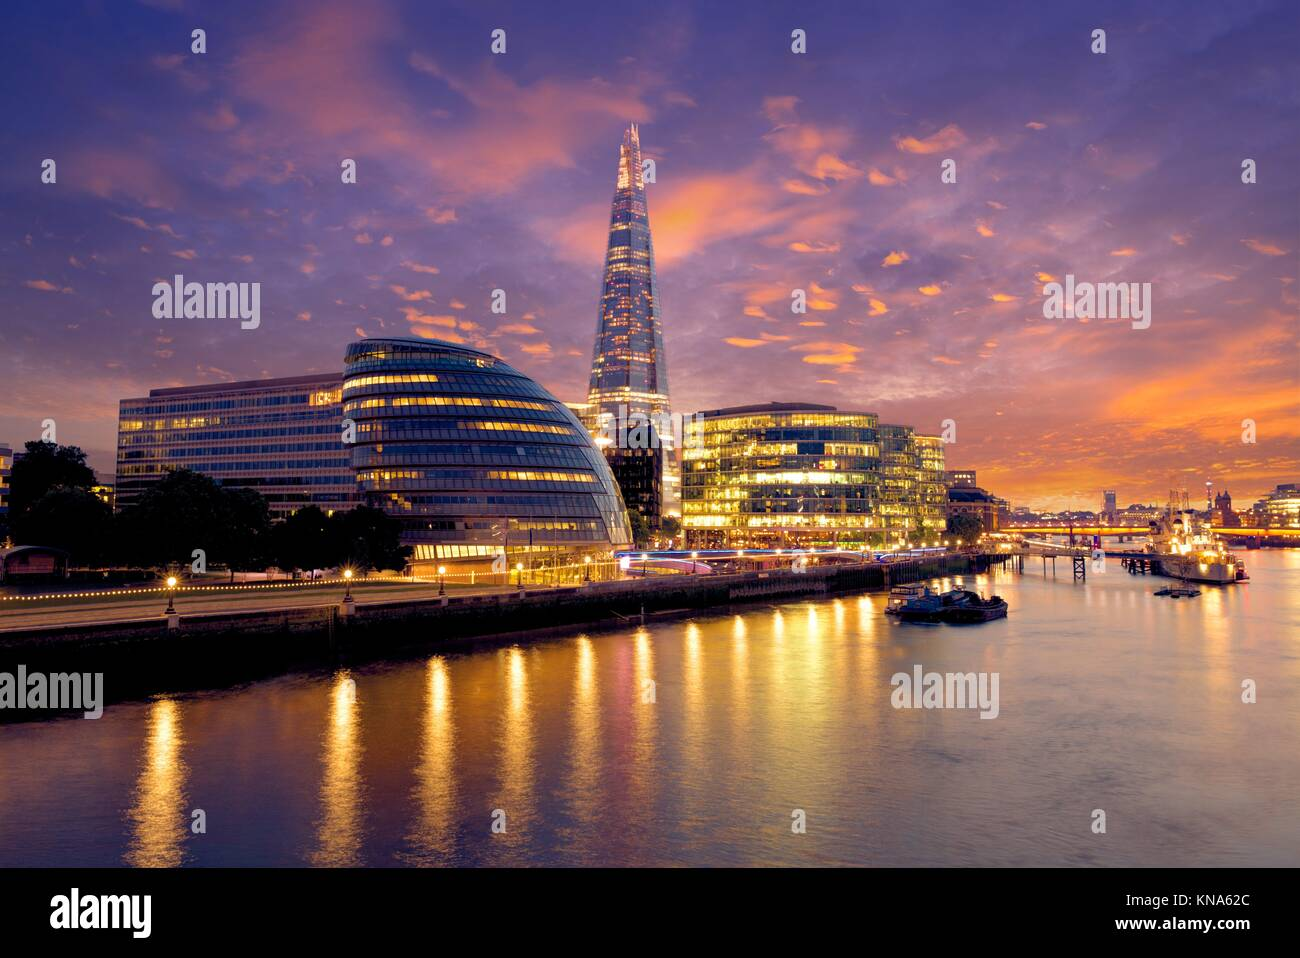 London skyline sunset City Hall and Shard on Thames river. - Stock Image